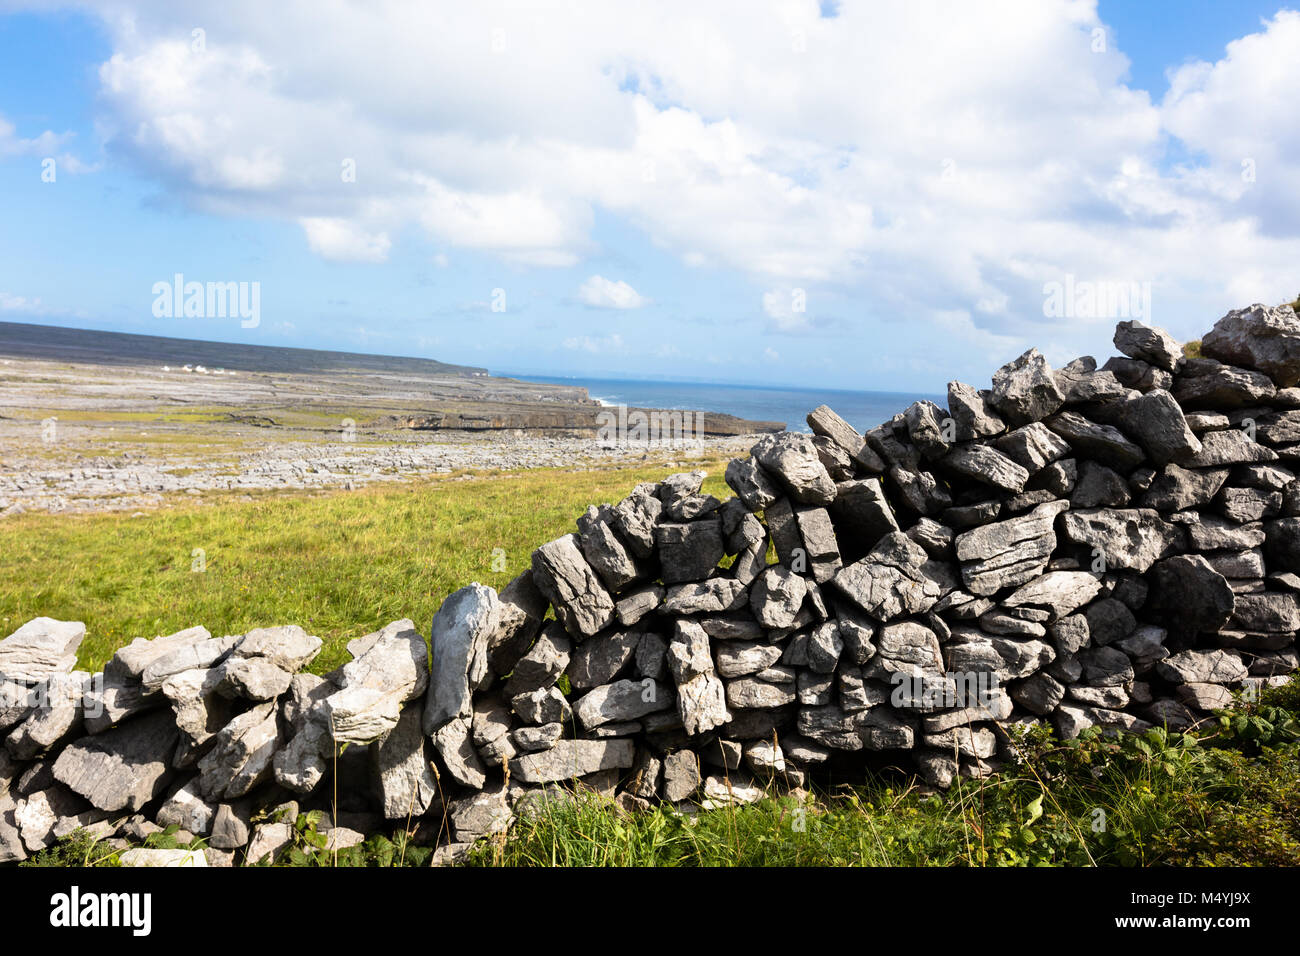 Inish more, Ireland - Stock Image